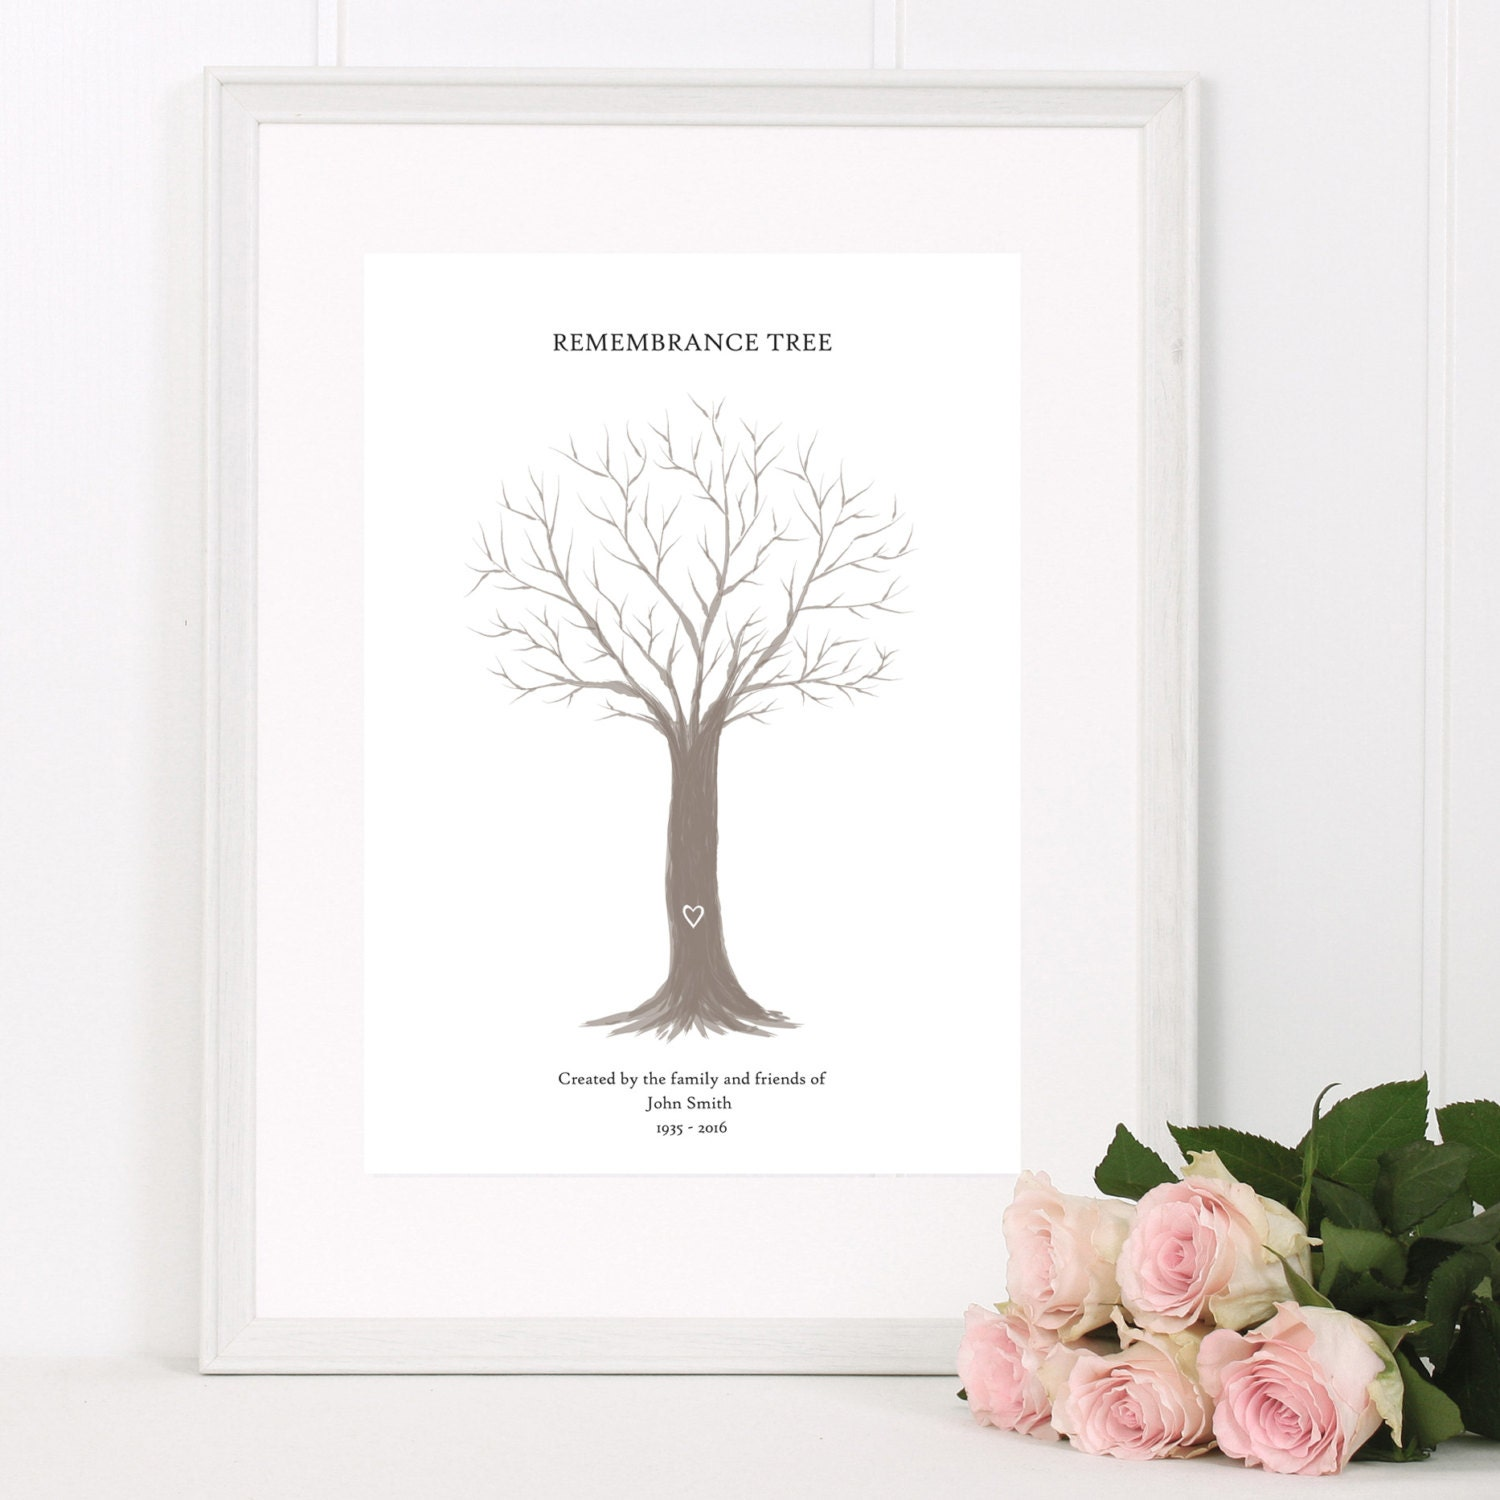 Pictures For Guests Fingerprints And Wishes: Personalised Remembrance Tree Funeral Fingerprint Guest Book